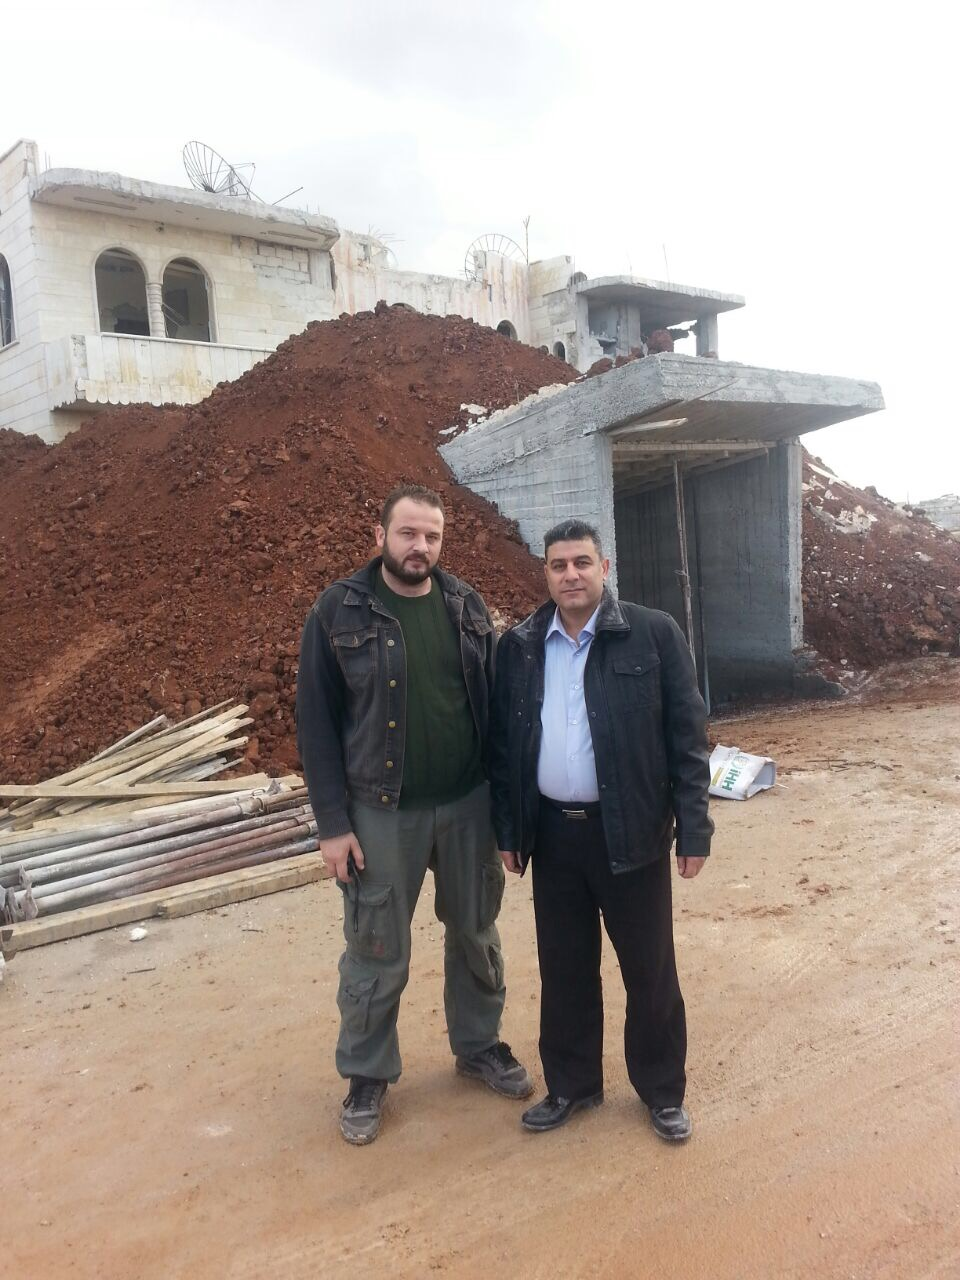 A picture of Dr. Dbais (left) with the late Dr. Al-Araj, (right) in front of emergency entrance to the hospital, which he covered with dirt to fortify the building